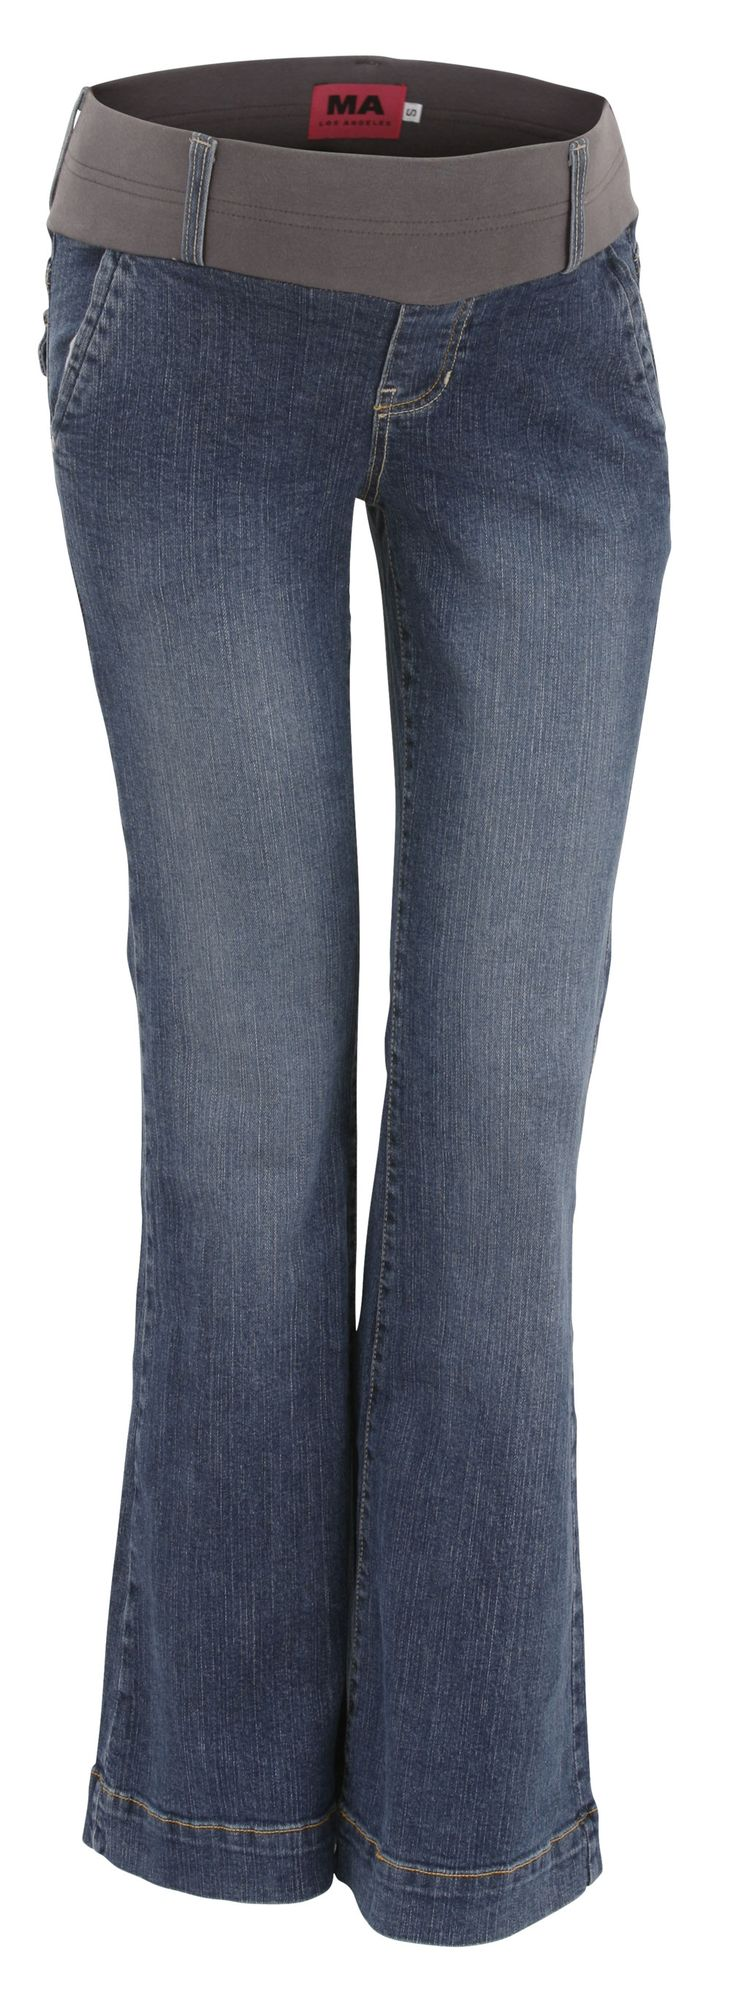 Maternal America Flare Boot Cut Maternity Jeans from Just Maternity Jeans | P197 MA2